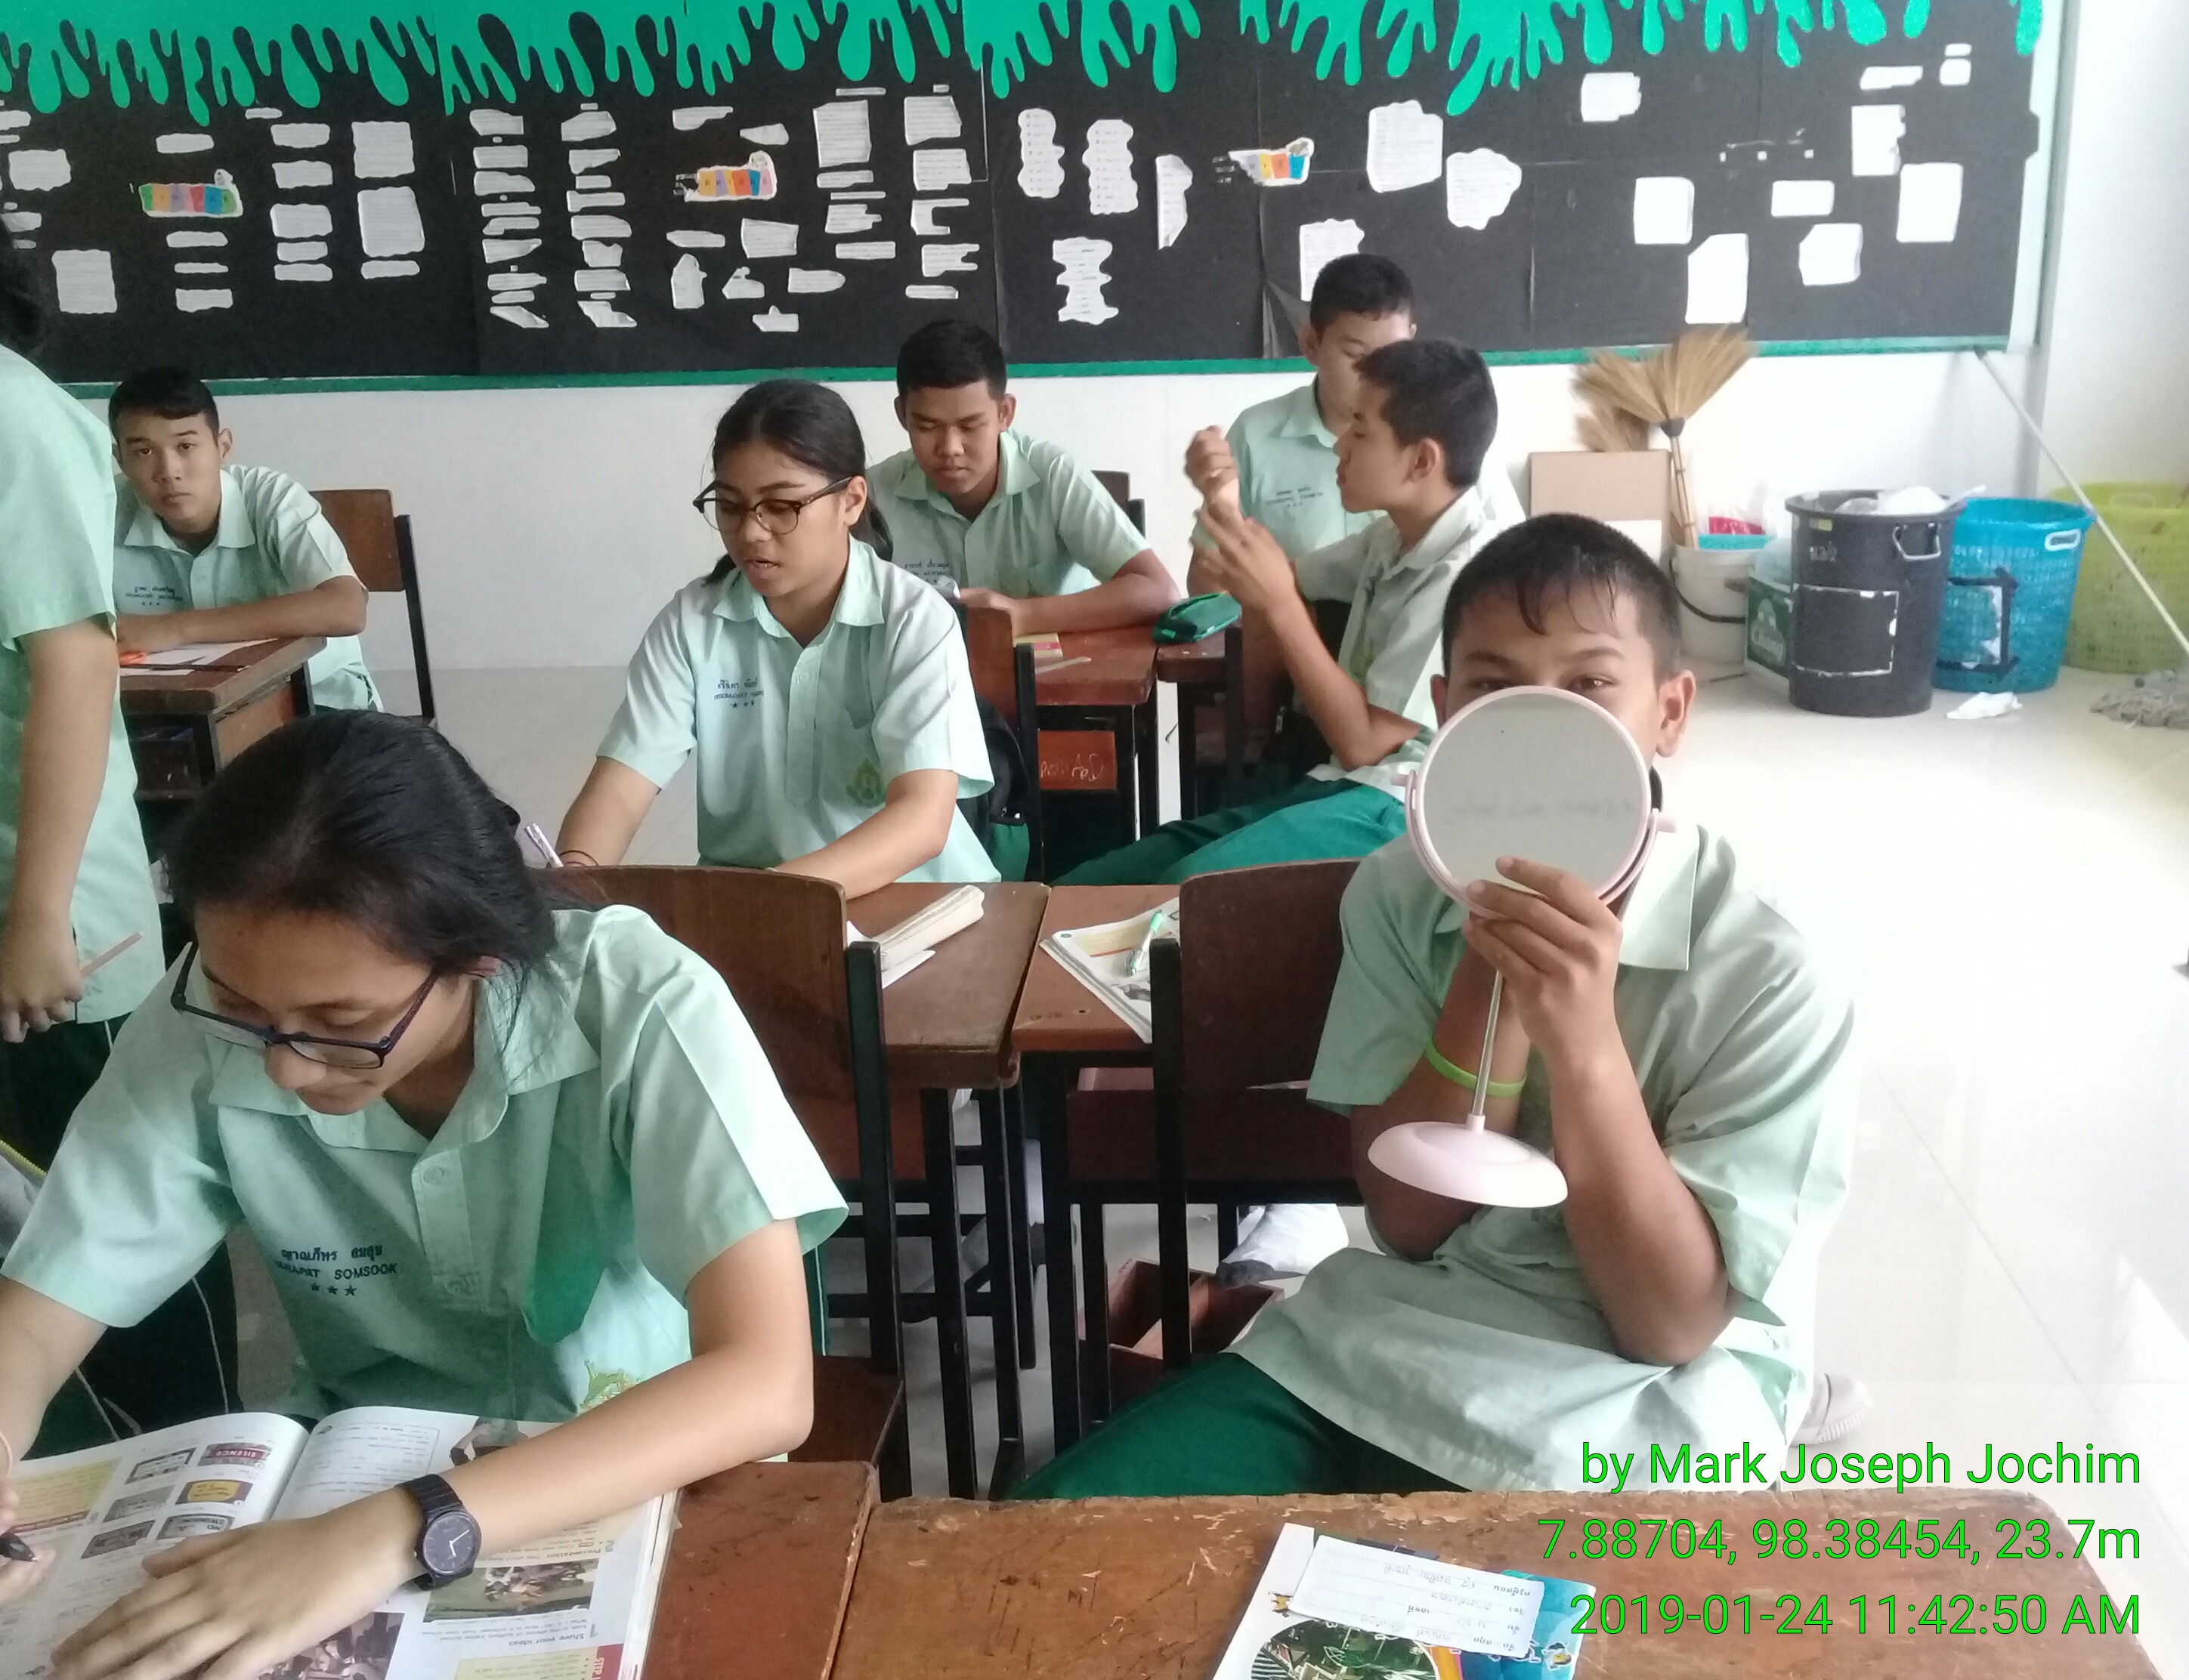 Students in Class M3/2 at Plukpanya Municipal School in Phuket, Thailand. Photo taken on January 24, 2019.